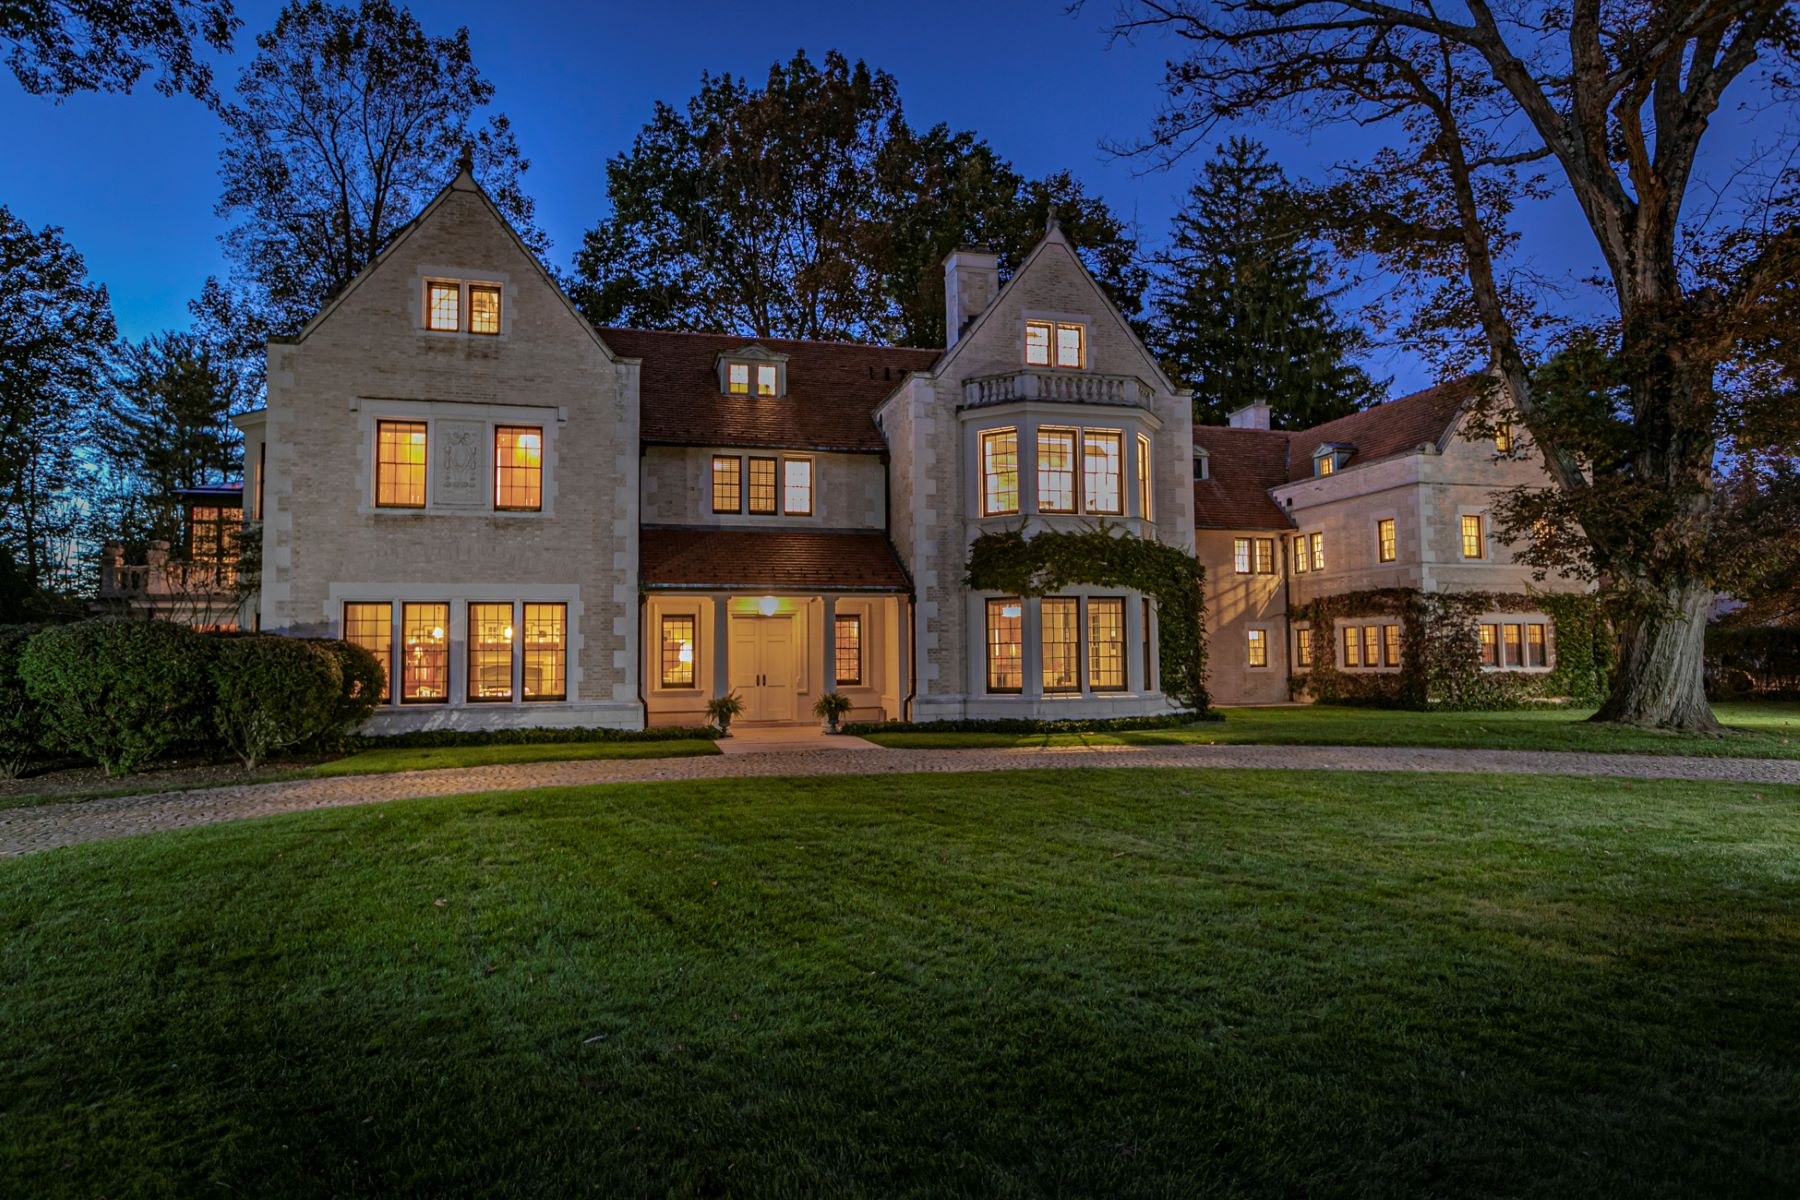 Single Family Homes for Active at Historic Pyne Mansion 211 Winant Road Princeton, New Jersey 08540 United States